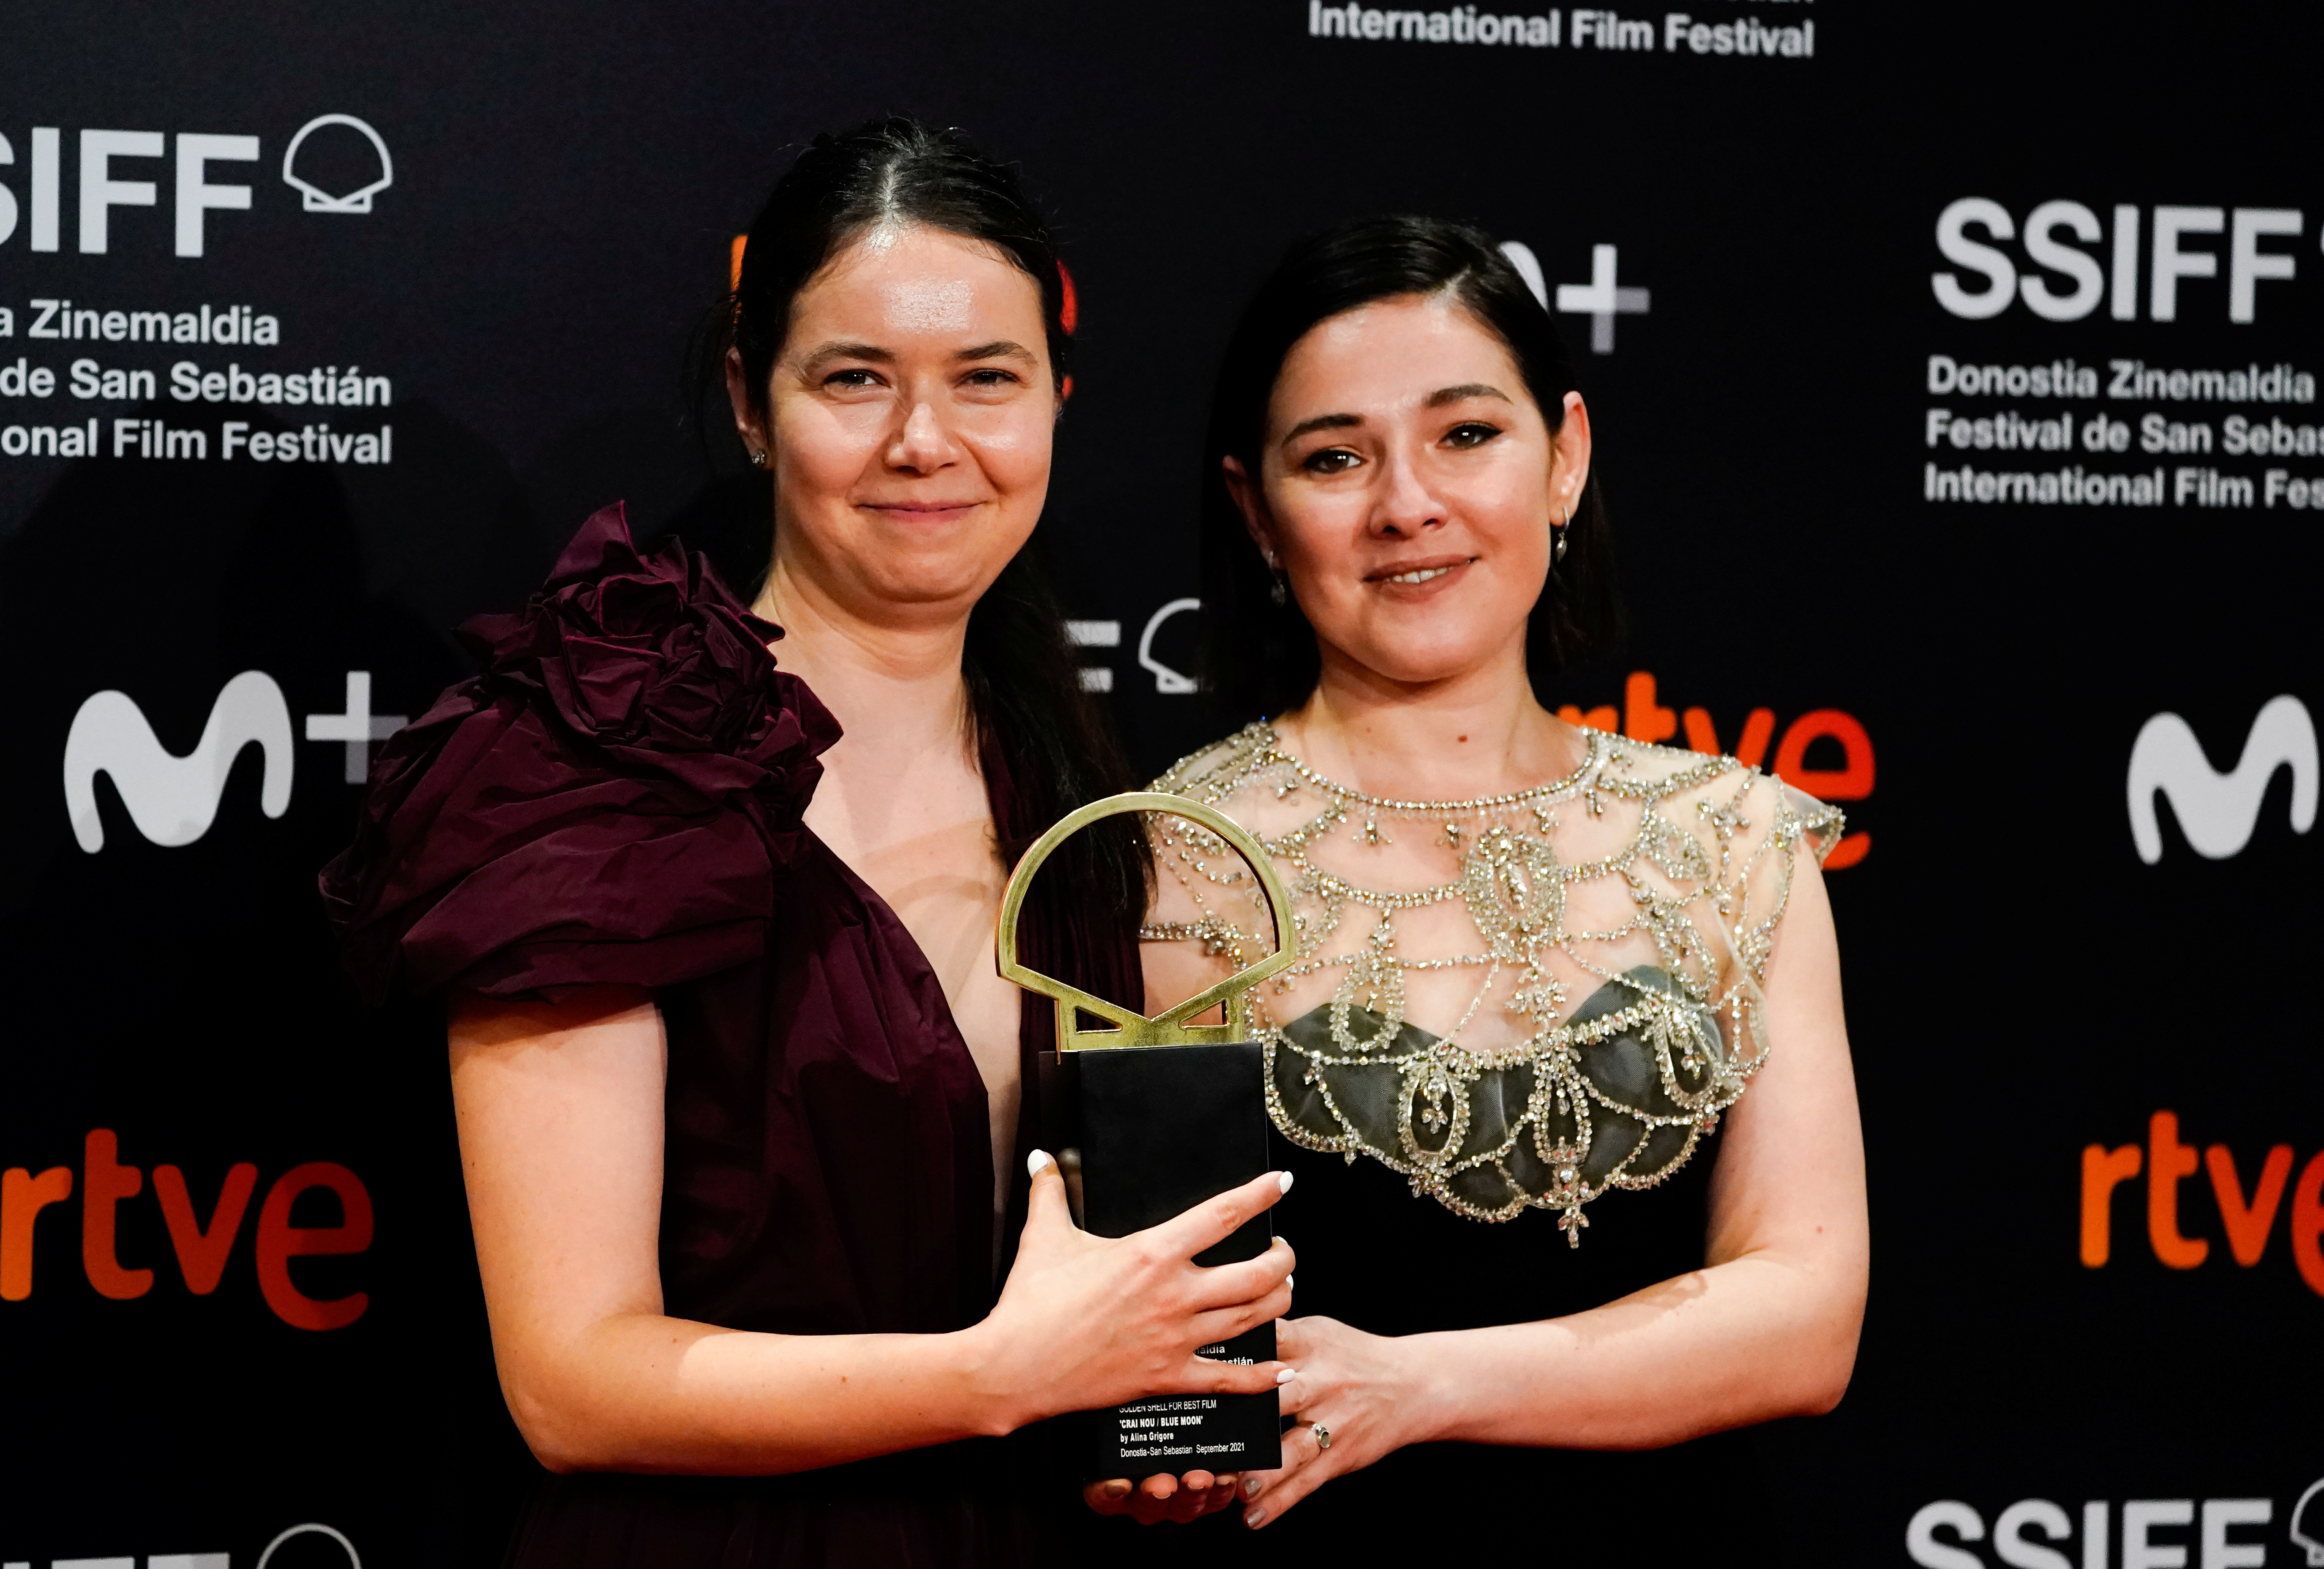 Director and producer Alina Grigore and producer Gabi Suciu pose with the Concha de Oro (Golden Shell) award for best film for the feature film